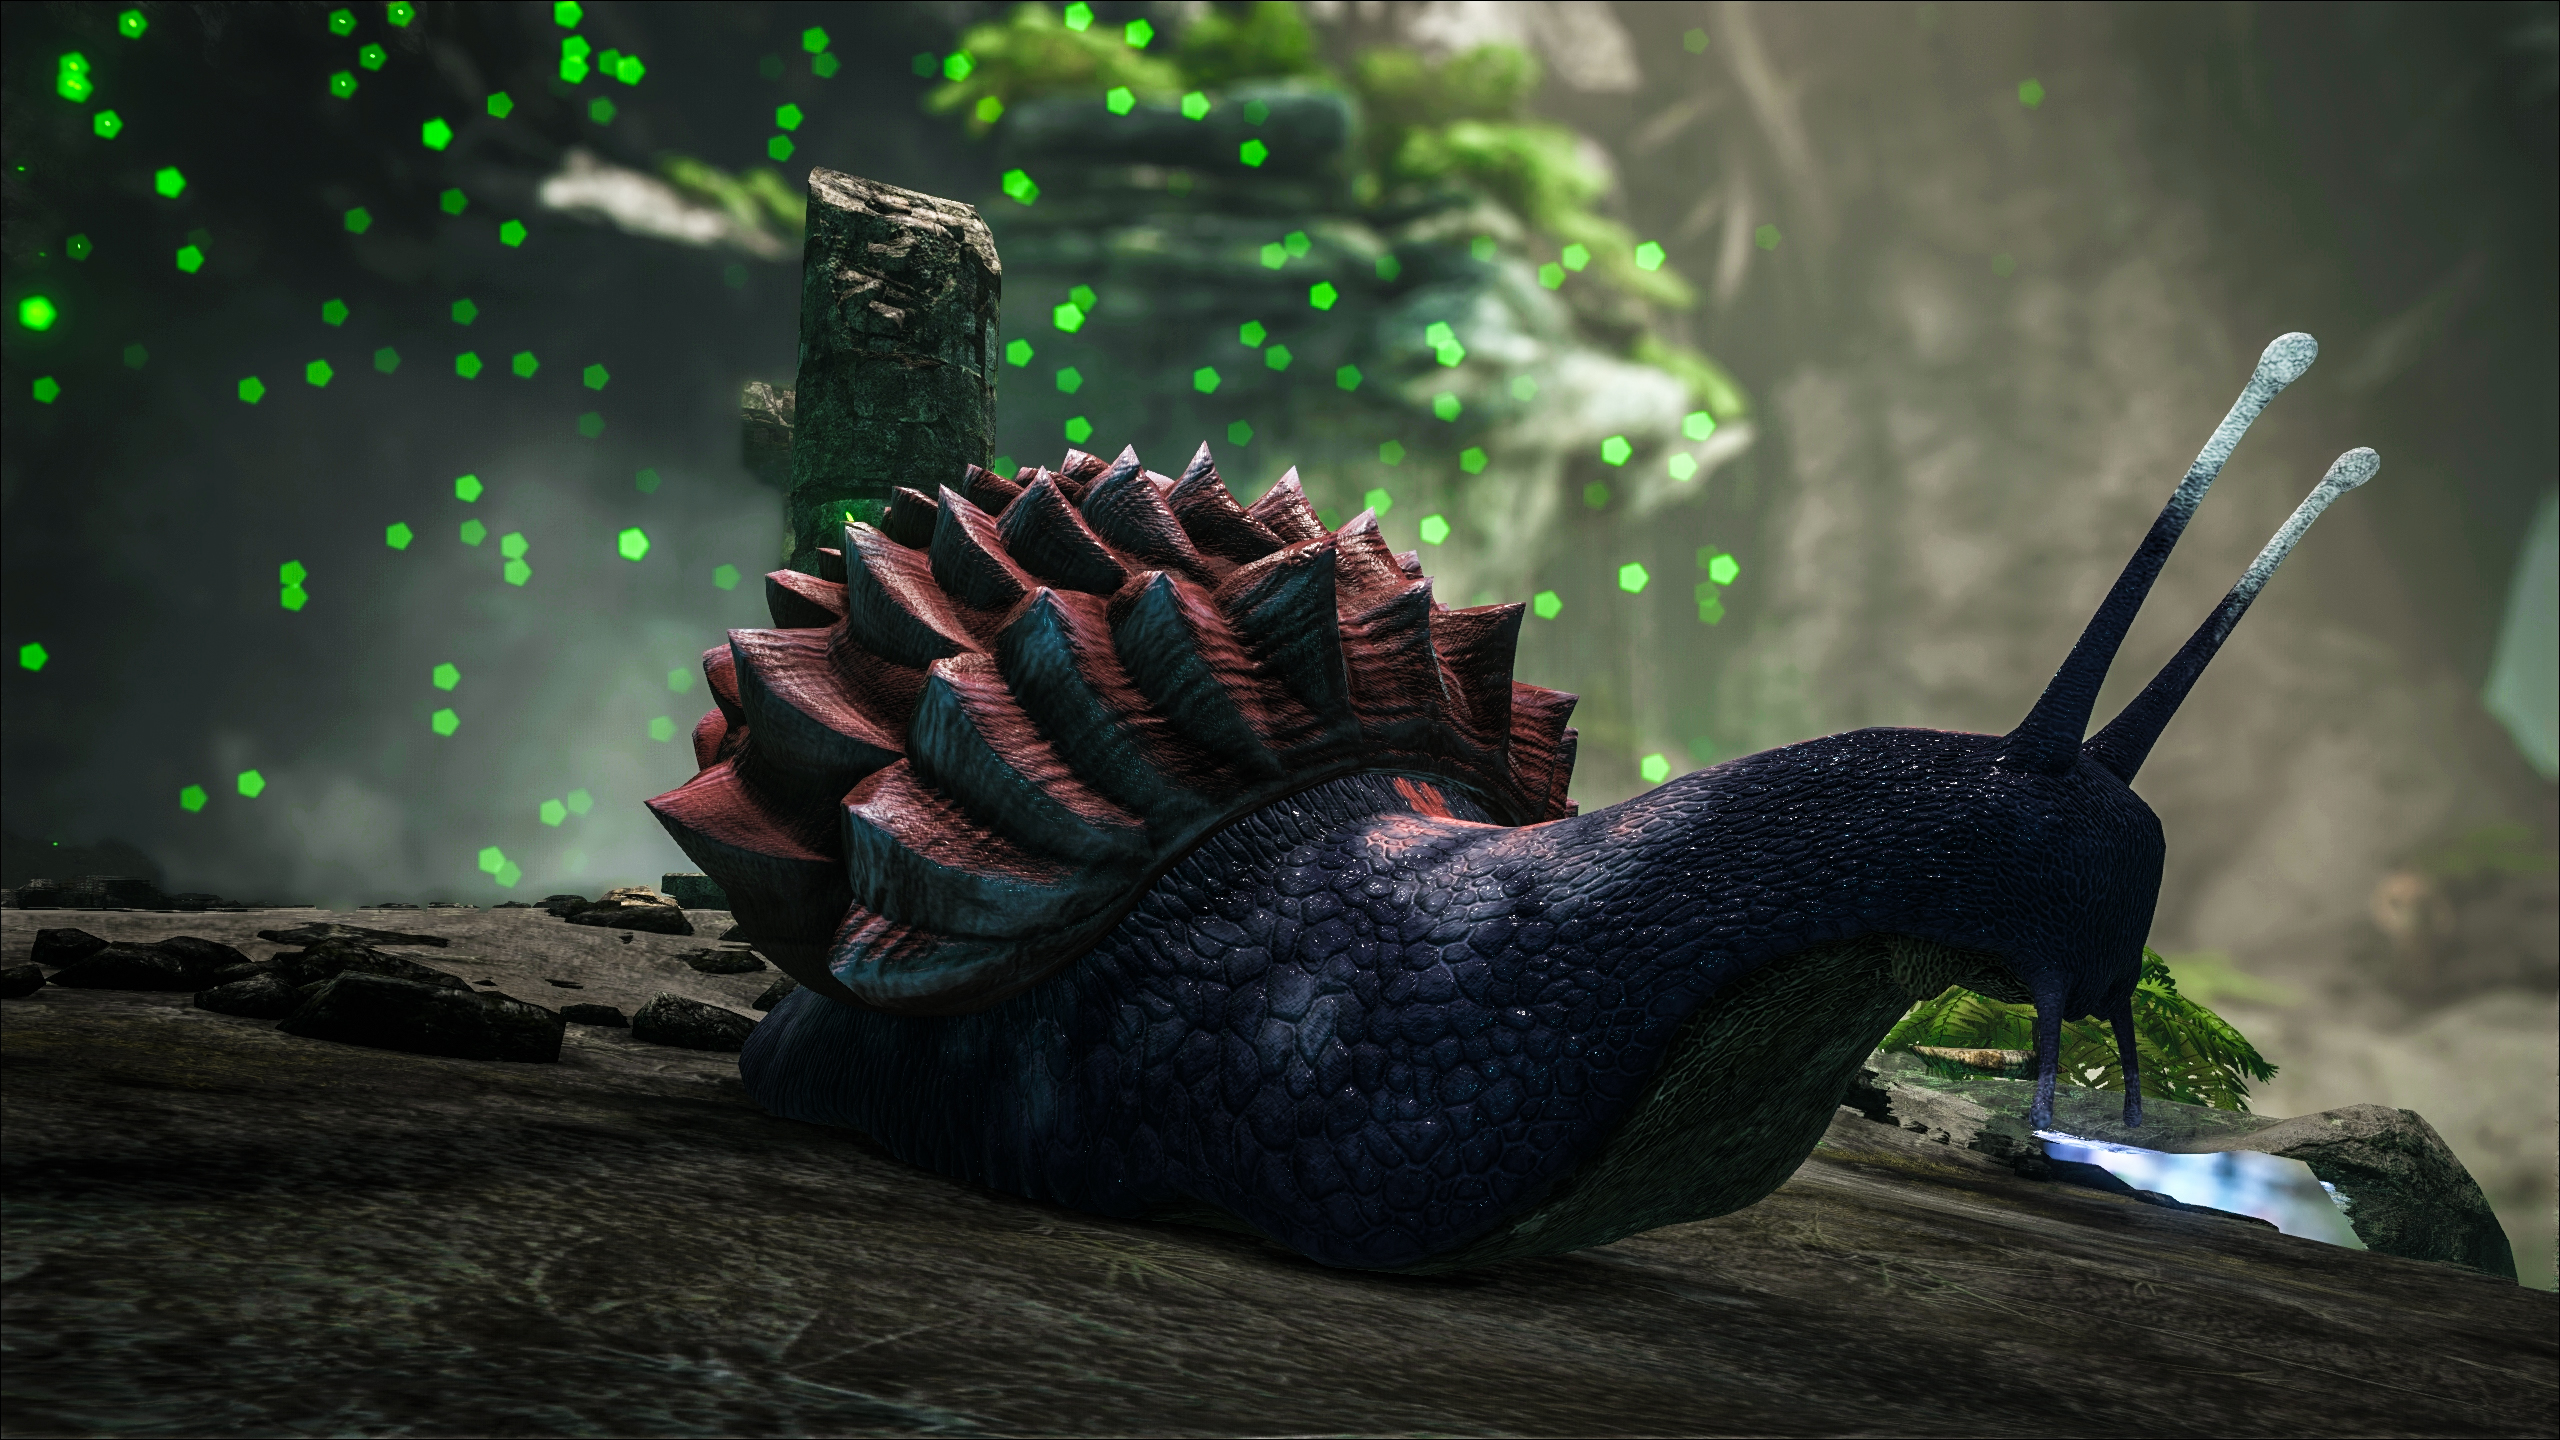 Superior Patch 252: Achatina, Megalosaurus, Moschops, Pachyrhinosaurus, New Caves  And More!